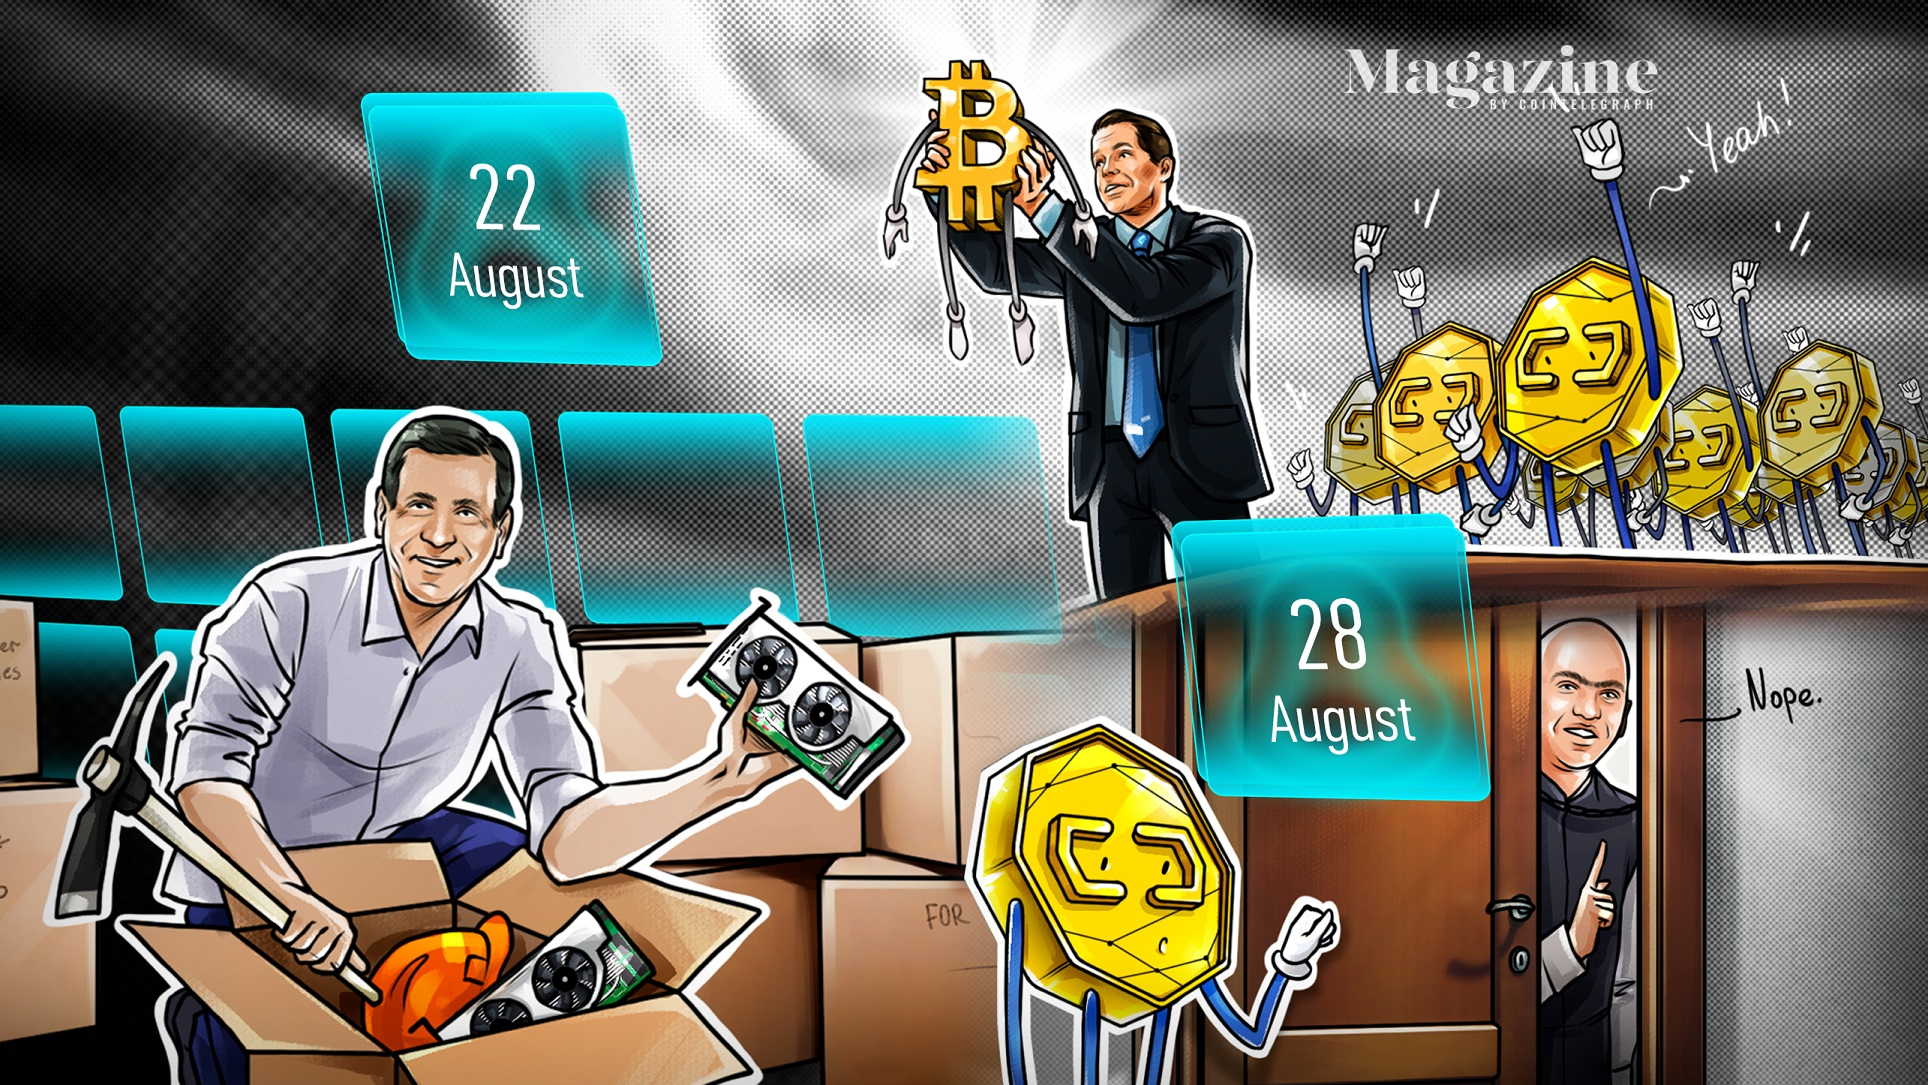 U.S. Congress submits 18 crypto bills in 2021, Visa buys $150K CryptoPunk, MicroStrategy snaps up more BTC: Hodler's Digest, Aug. 22-28